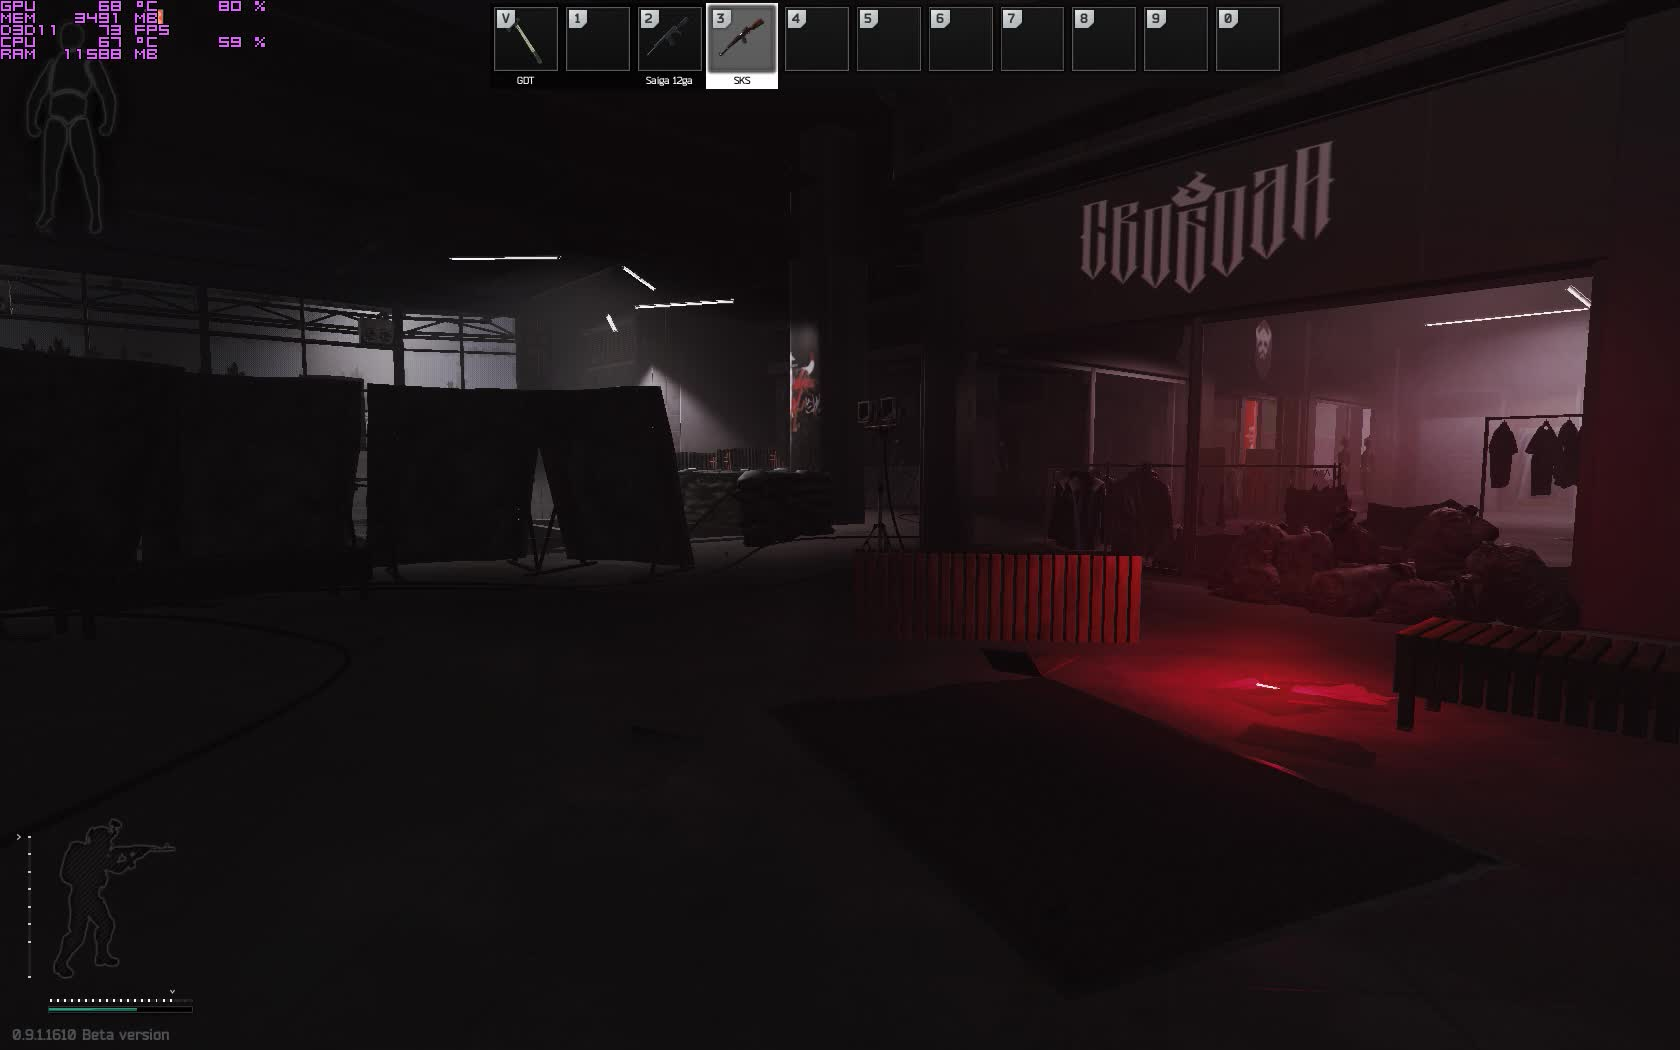 Escape From Tarkov Multiplayer Gameplay Gifs Search | Search & Share